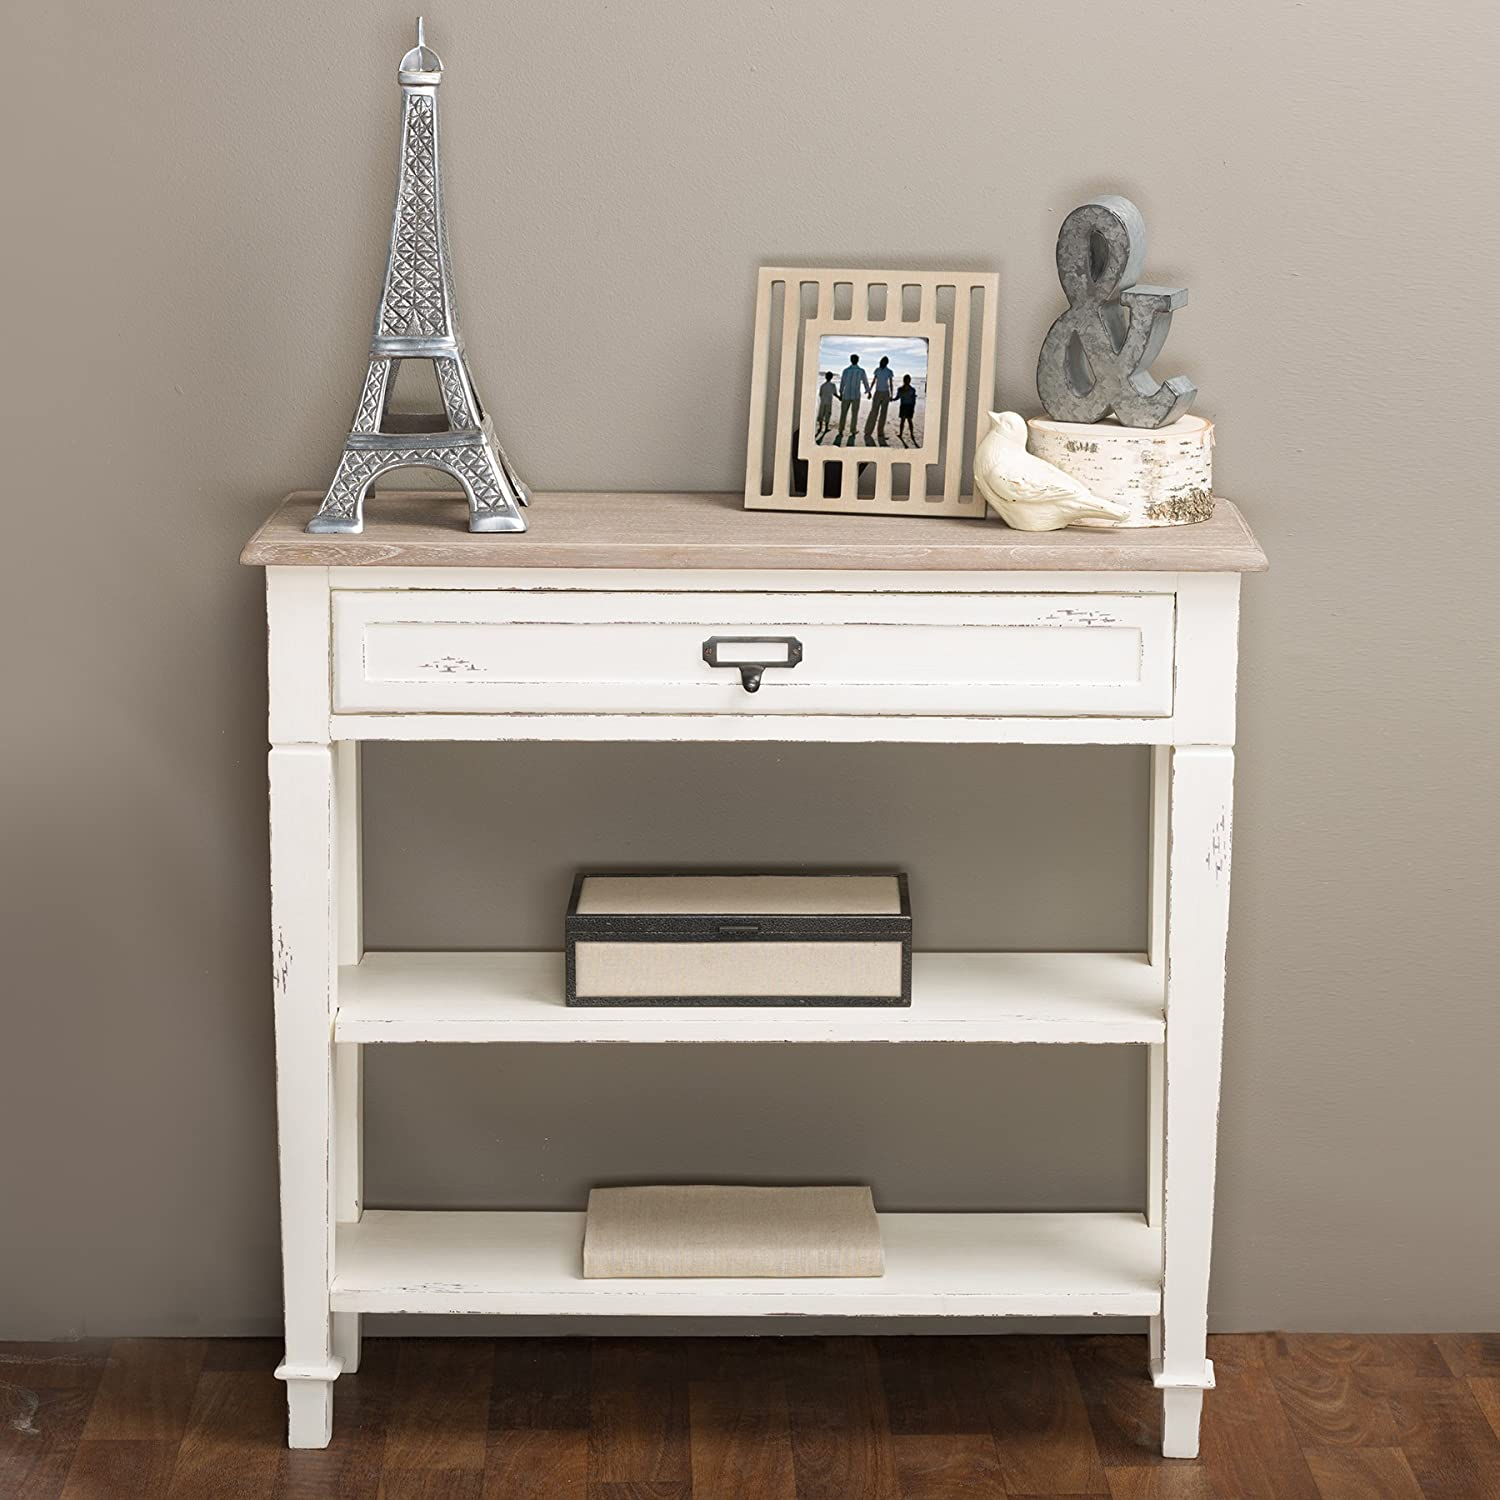 Sofa console tables amazon baxton studio dauphine traditional french 1 drawer accent console table white geotapseo Image collections